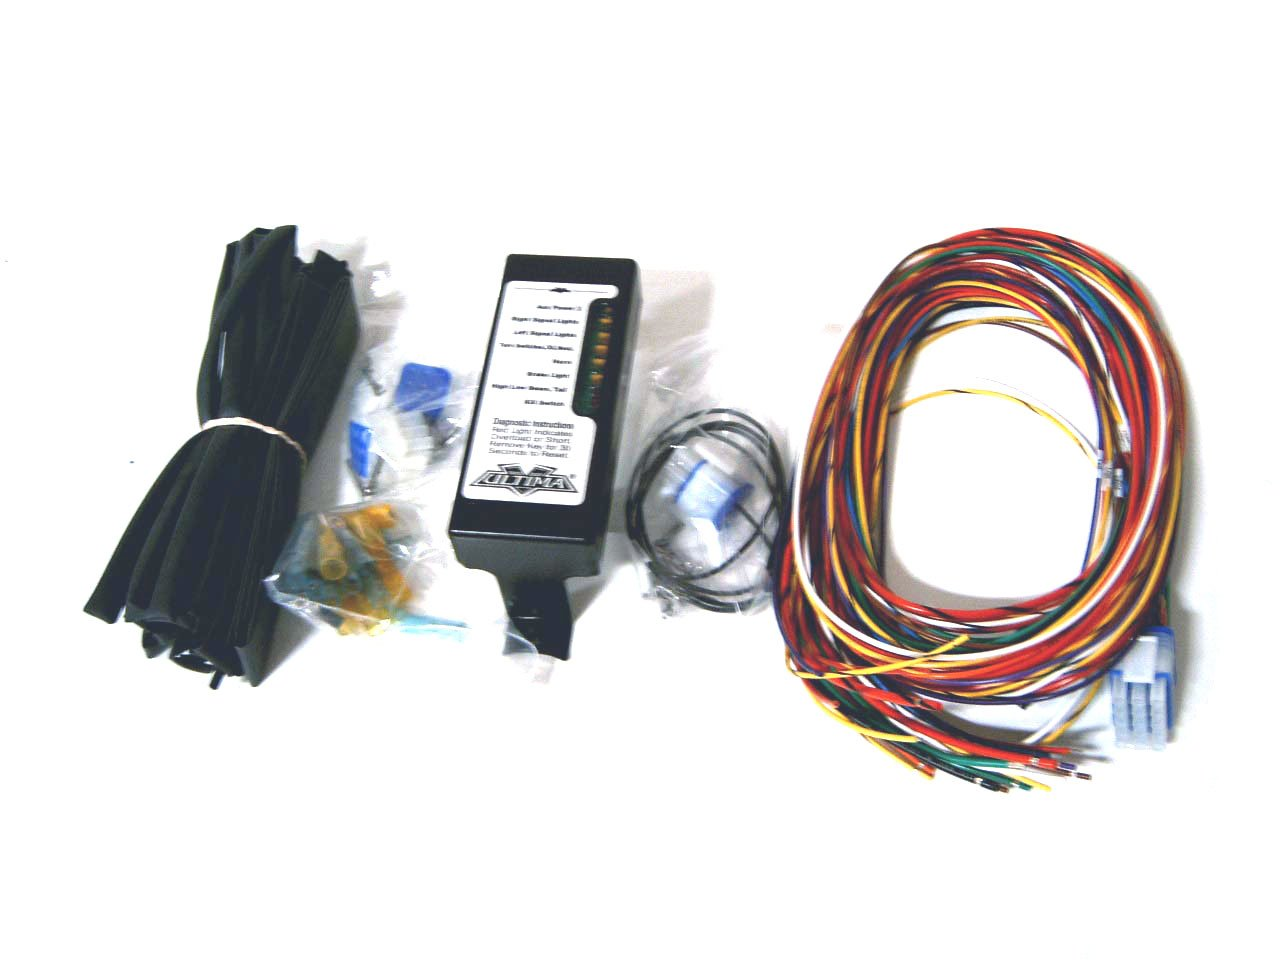 61DV2Bq5%2BHL._SL1280_ amazon com ultima complete wiring harness kit for harley davidson Universal Wiring Harness Diagram at eliteediting.co